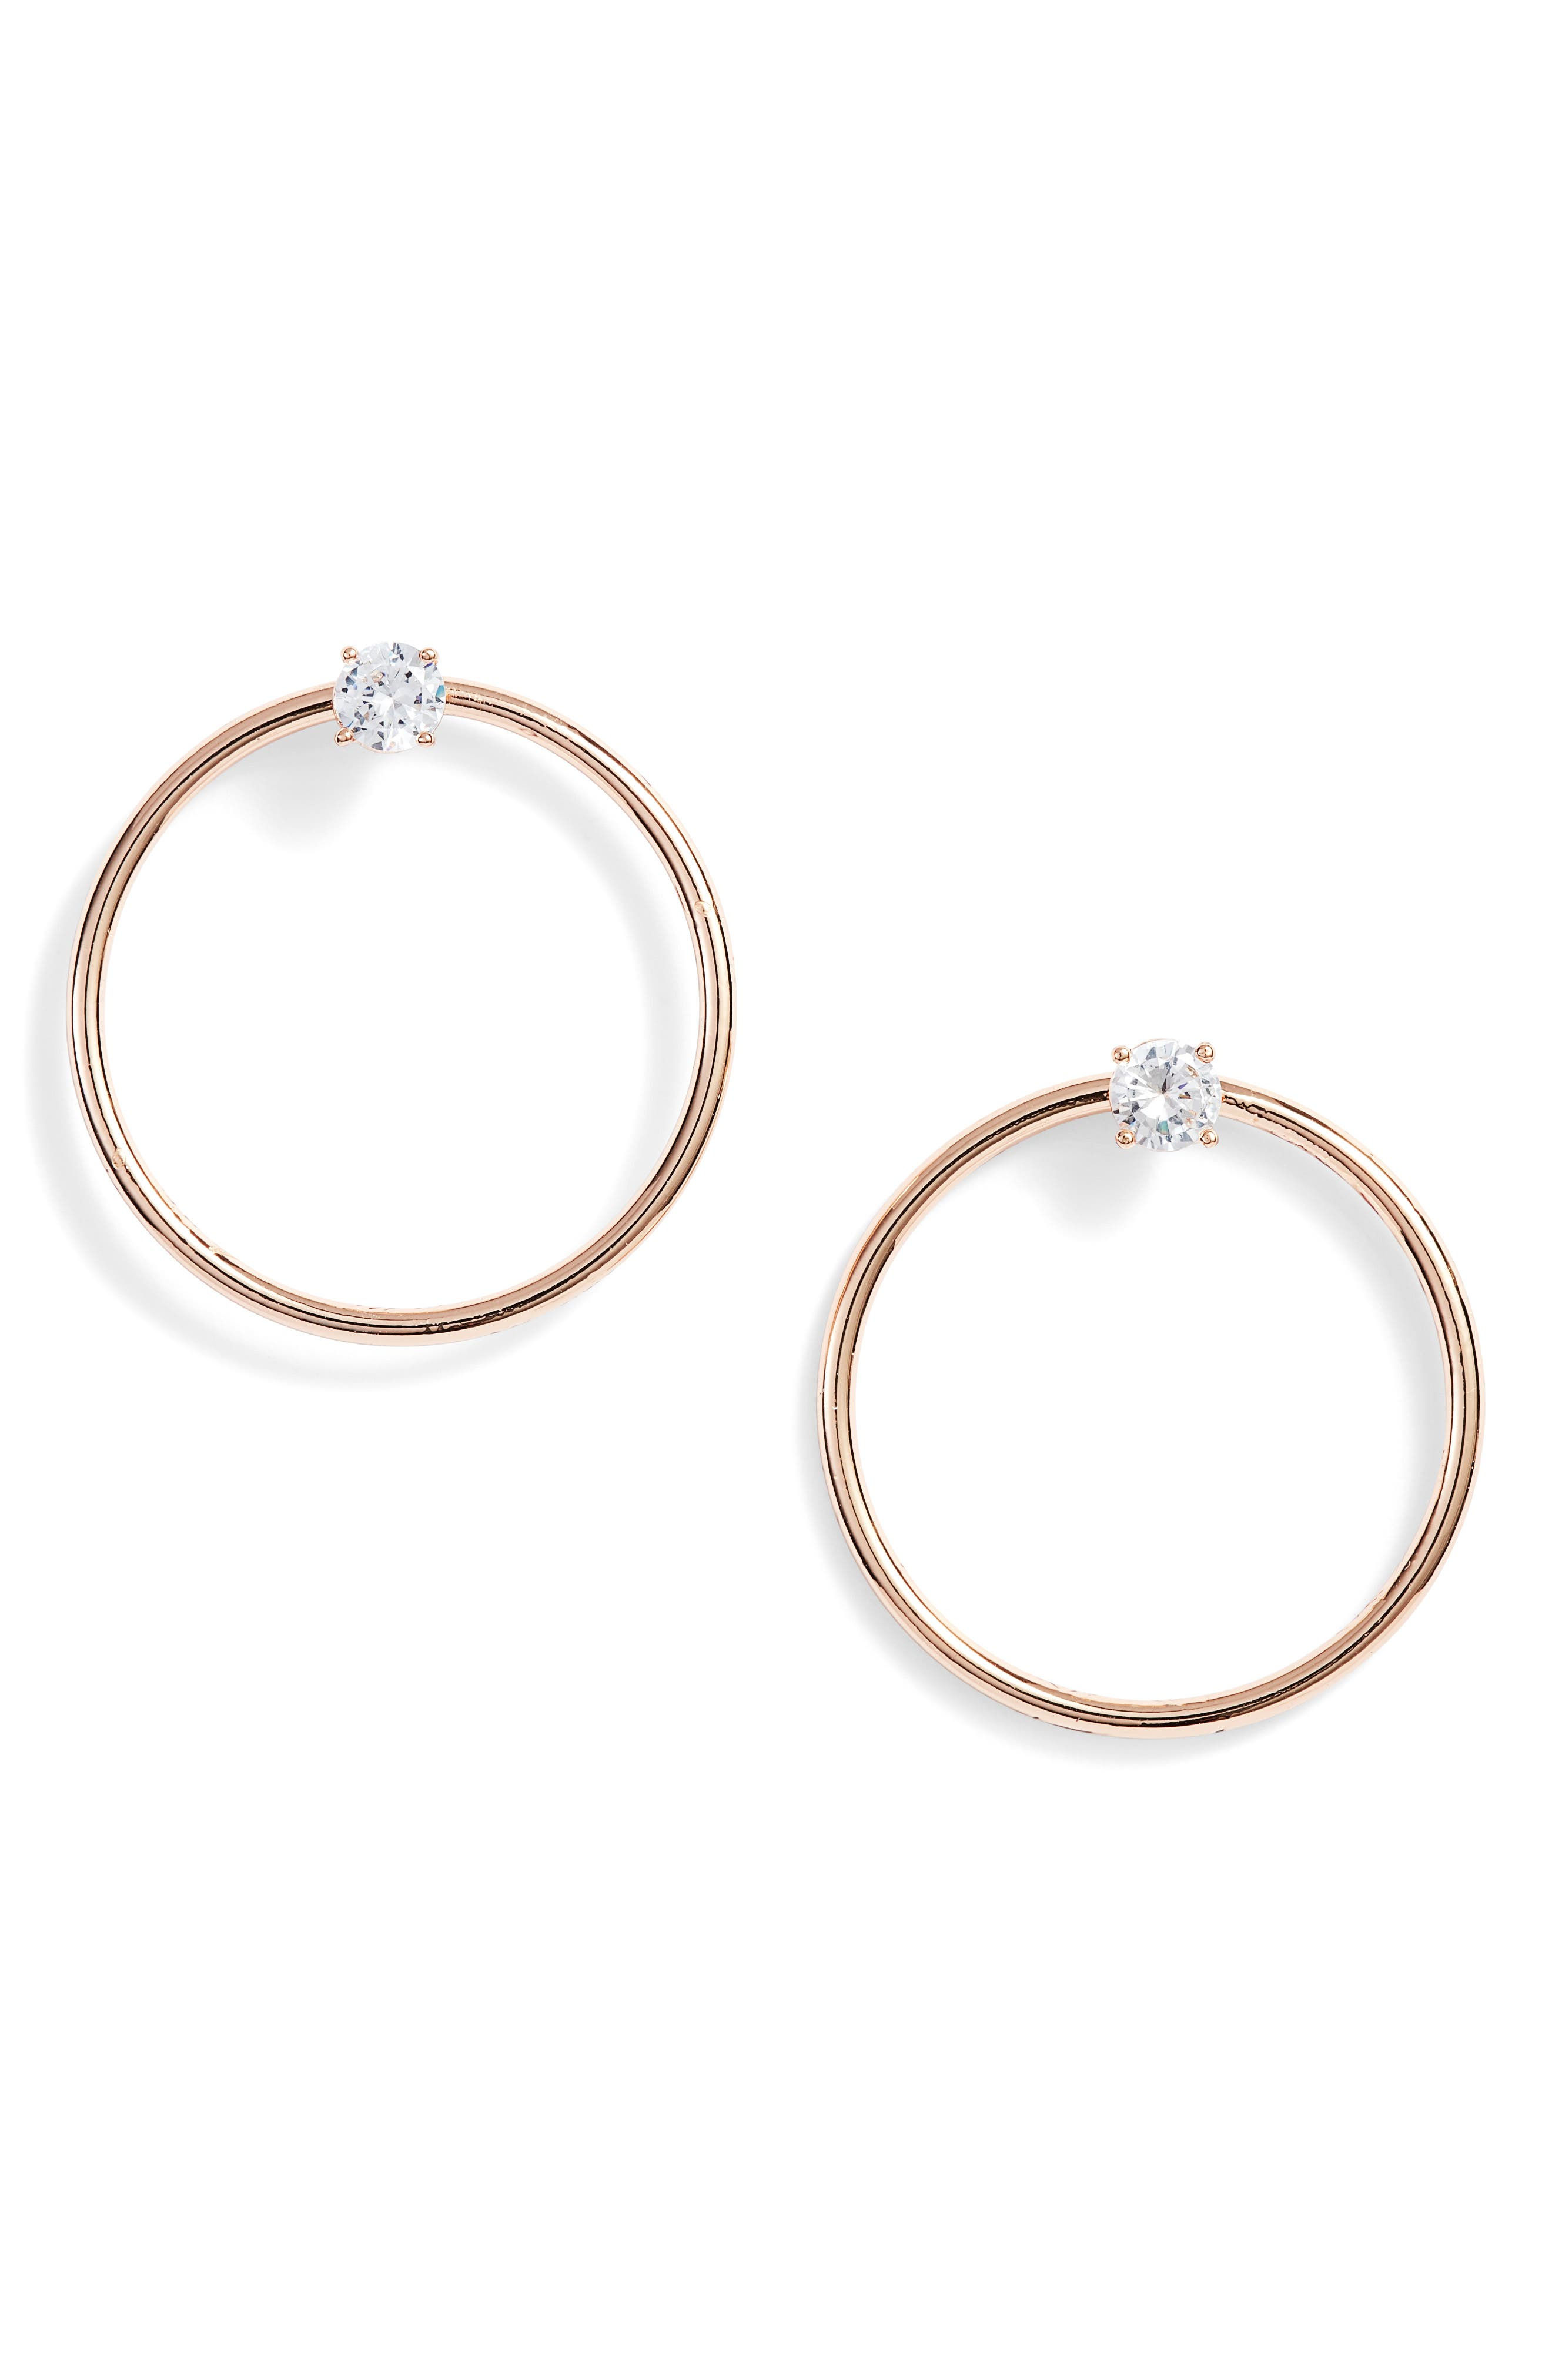 Crystal Stud Hoop Earrings,                         Main,                         color, Rose Gold